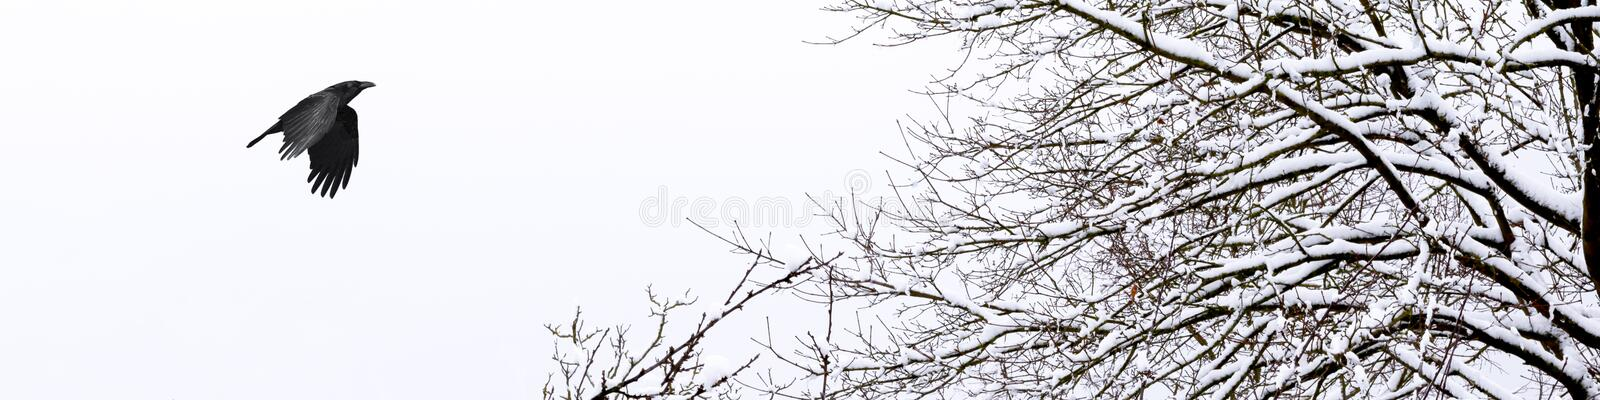 Horizontal banner of a cold and snowy winter. Horizontal banner of a cold winter white day with a raven in the sky stock photos